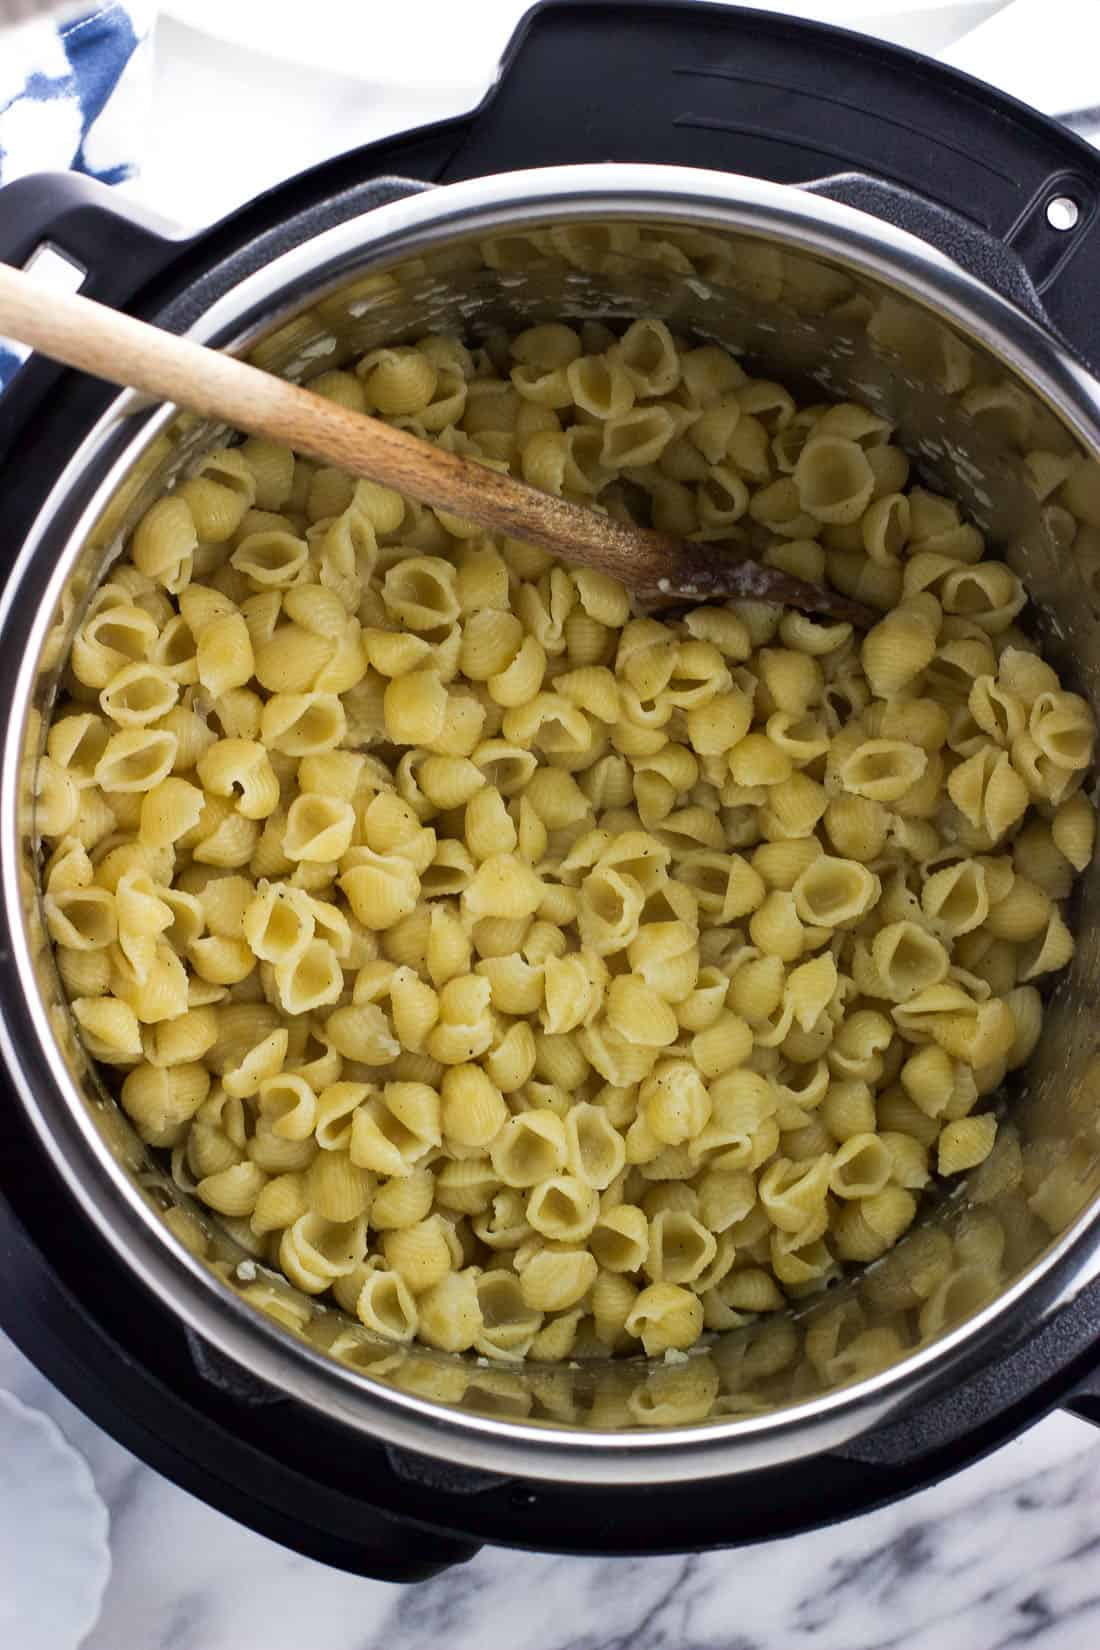 Cooked pasta in the Instant Pot insert after pressure cooking and before stirring in milk and cheese